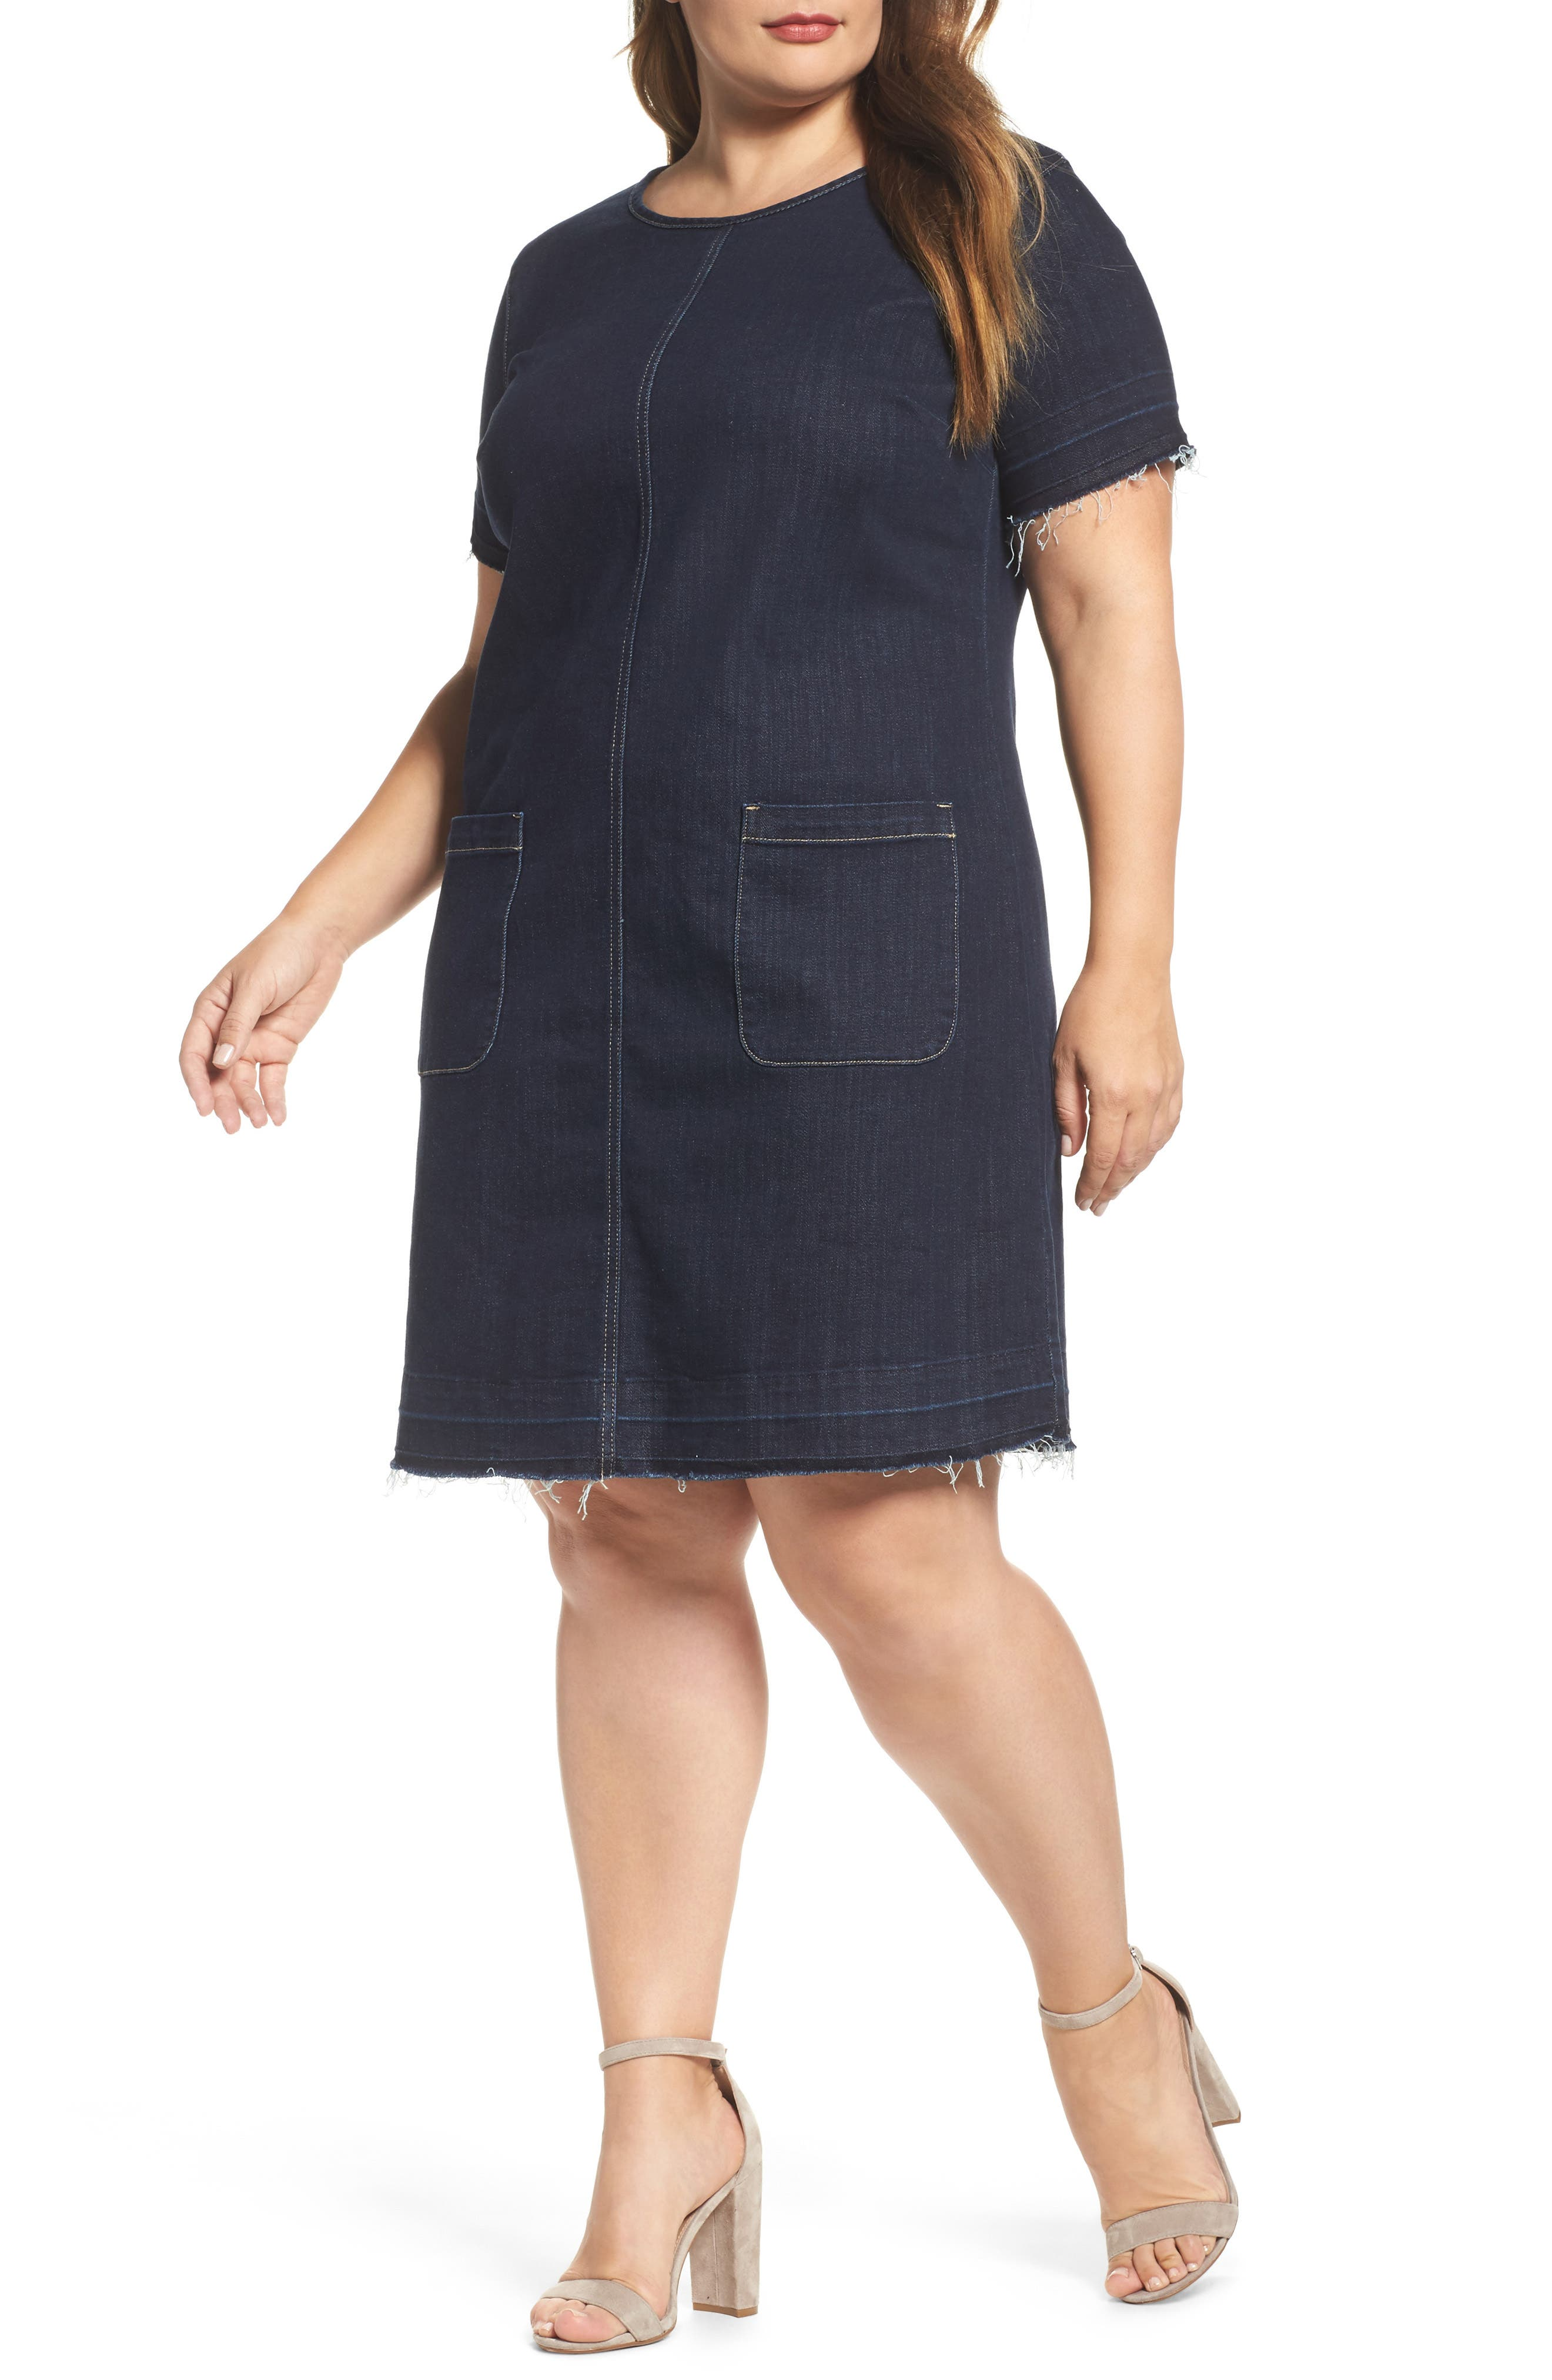 Alternate Image 1 Selected - Two by Vince Camuto Release Hem Denim Dress (Plus Size)